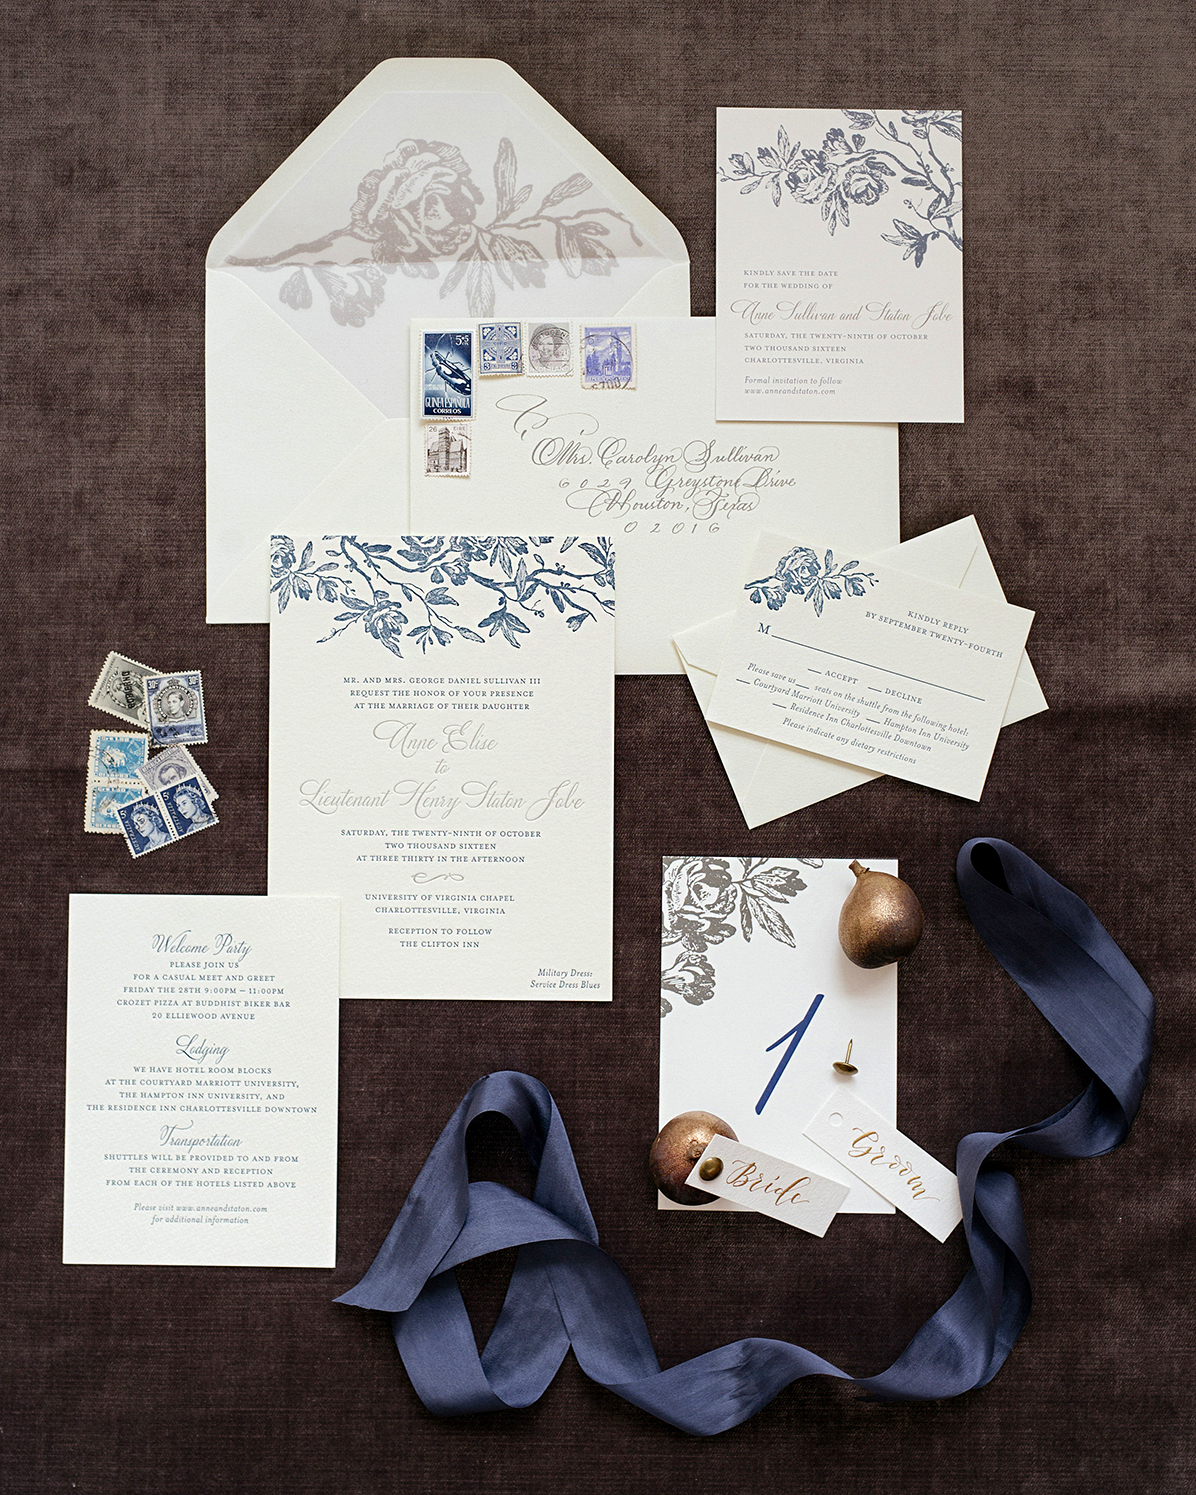 anne and staton wedding stationery